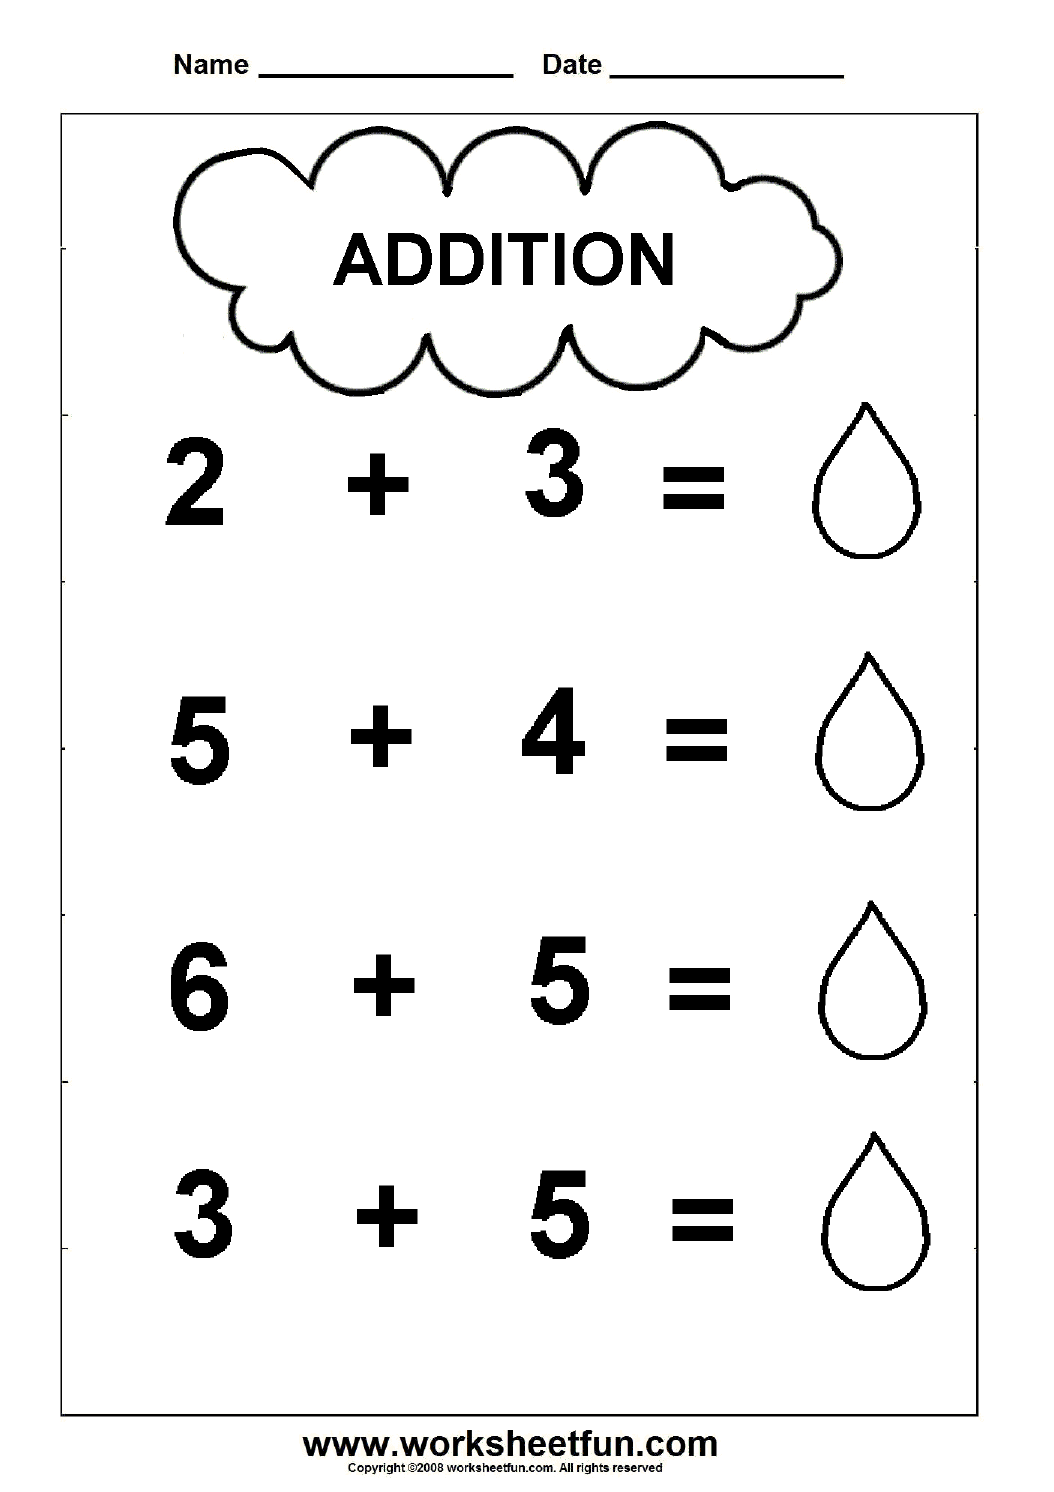 Worksheets Easy Addition Worksheets addition worksheets kindergarten pinterest 2 worksheets